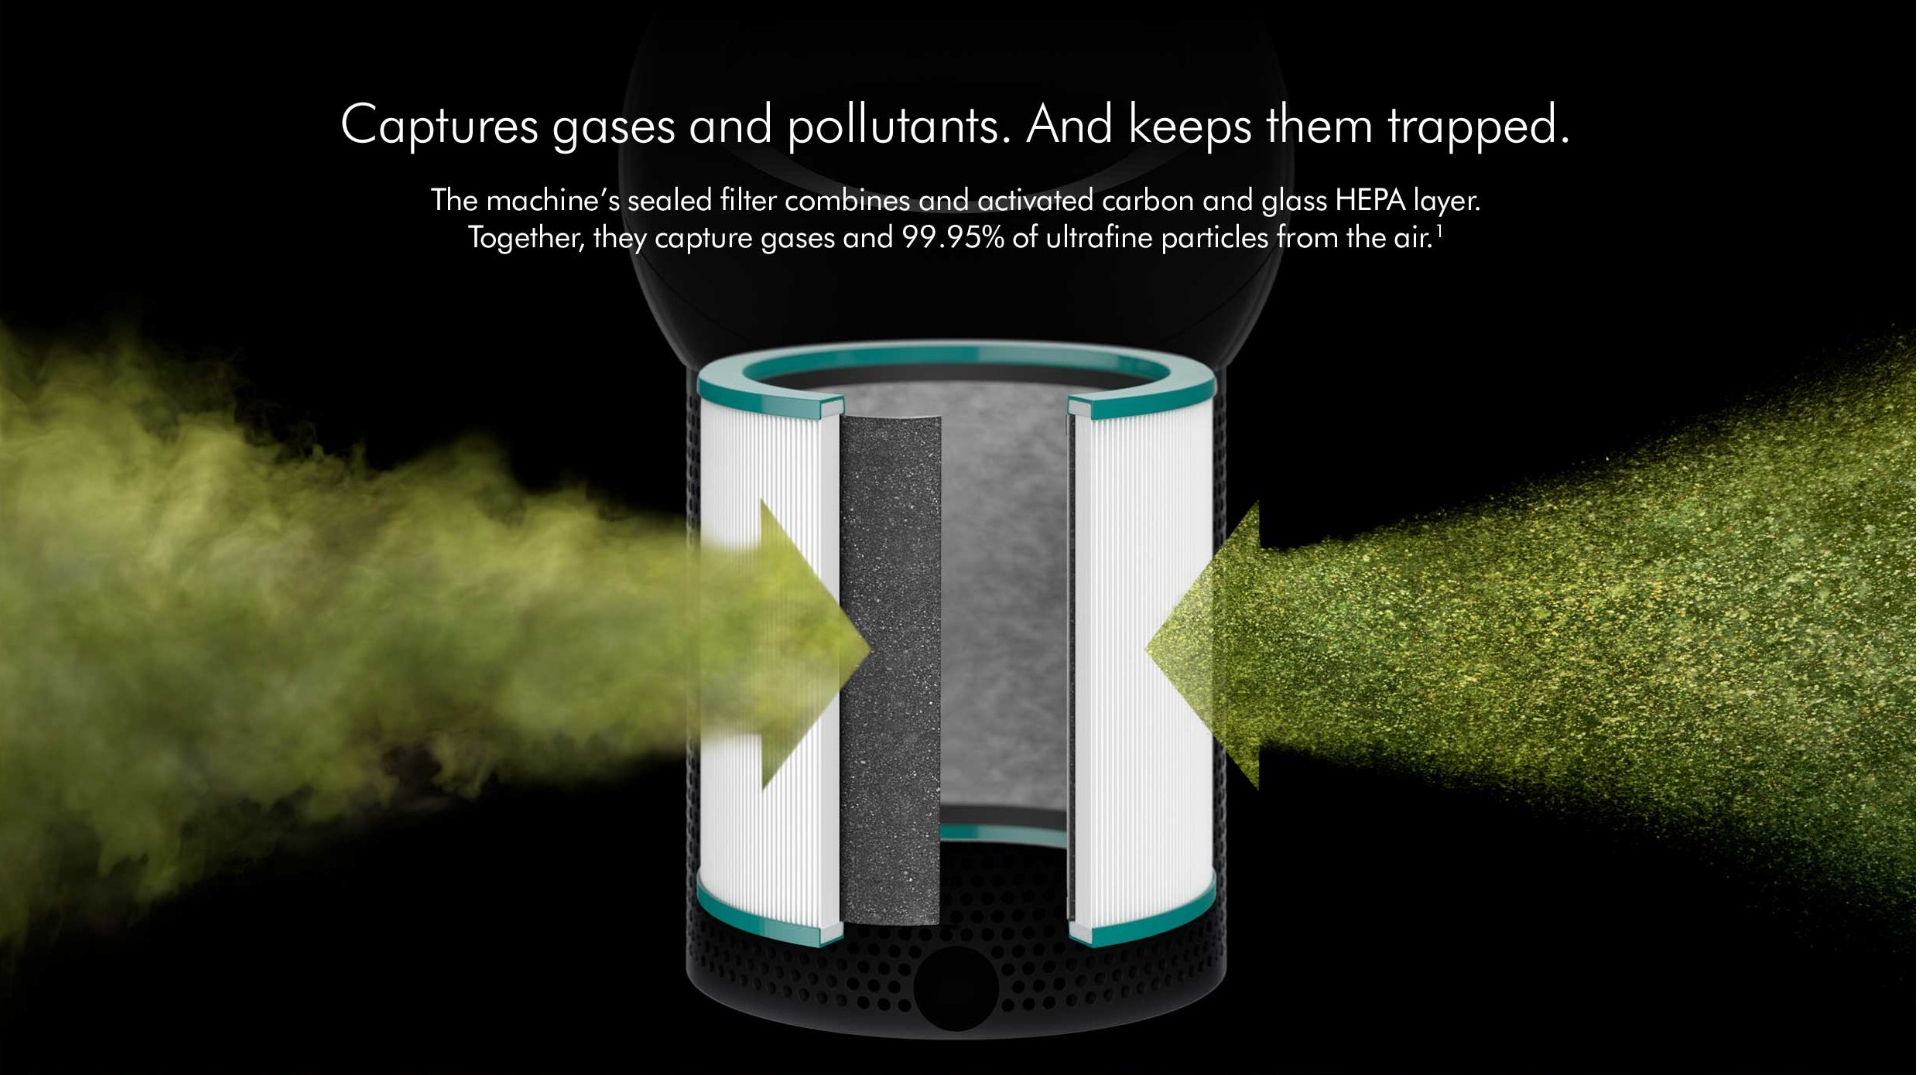 Captures gases and pollutants and keeps them trapped